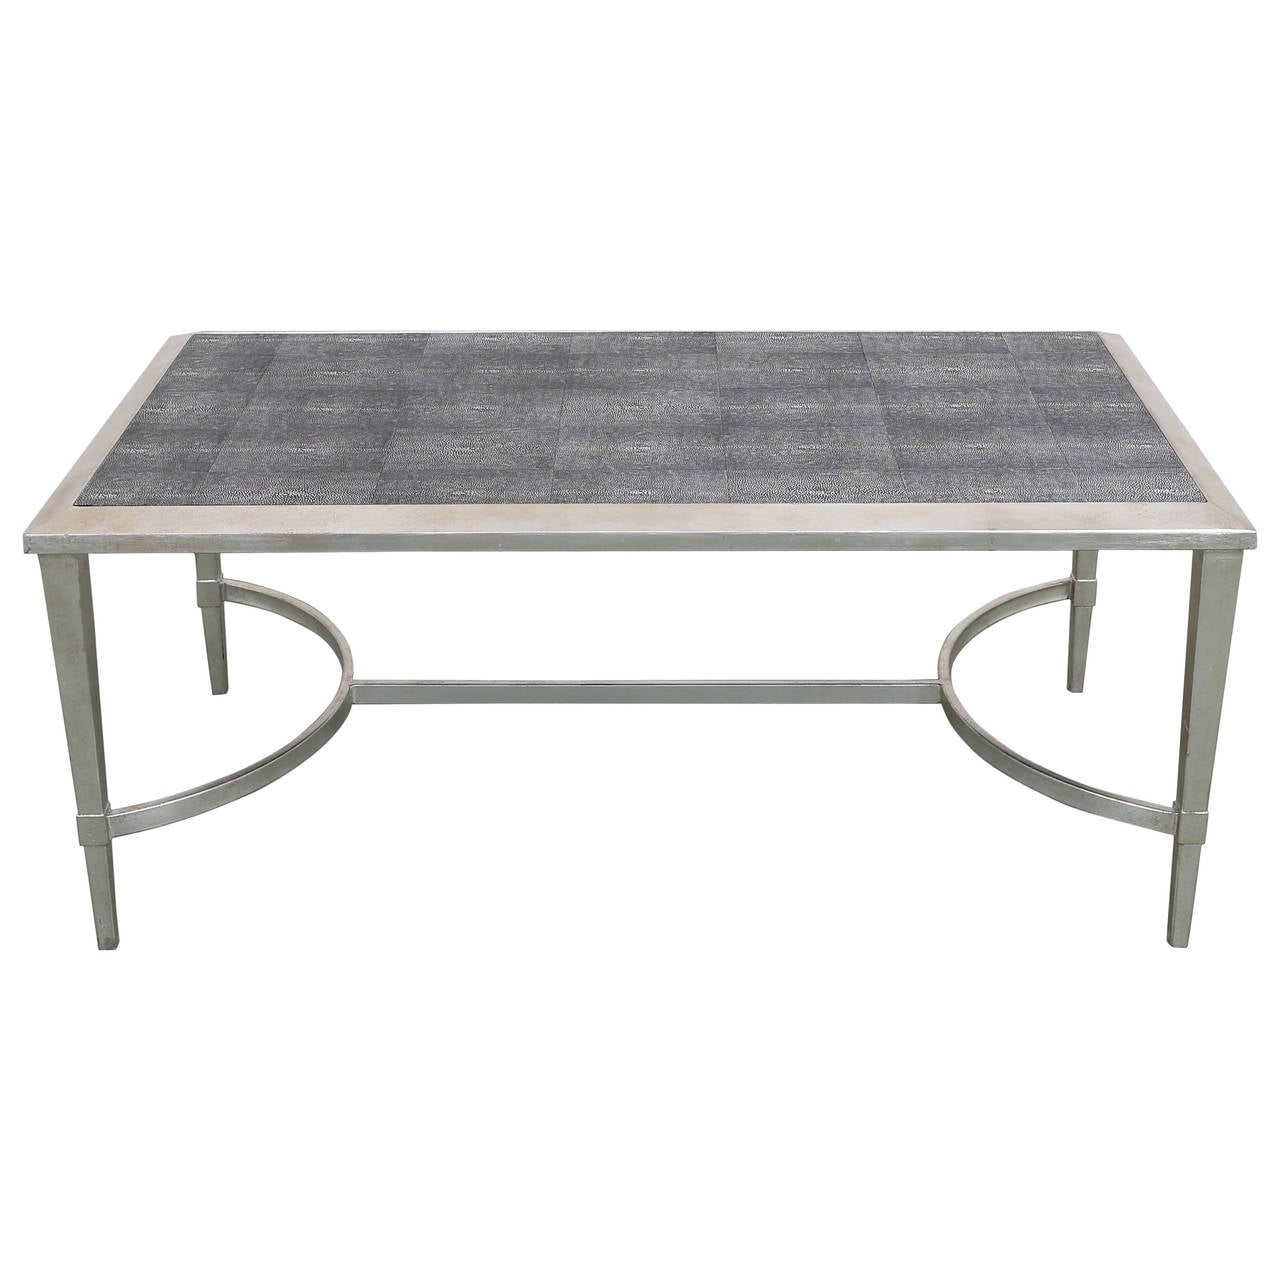 Hollywood regency faux shagreen leather and silver leaf coffee table for sale at 1stdibs Coffee table with leather top